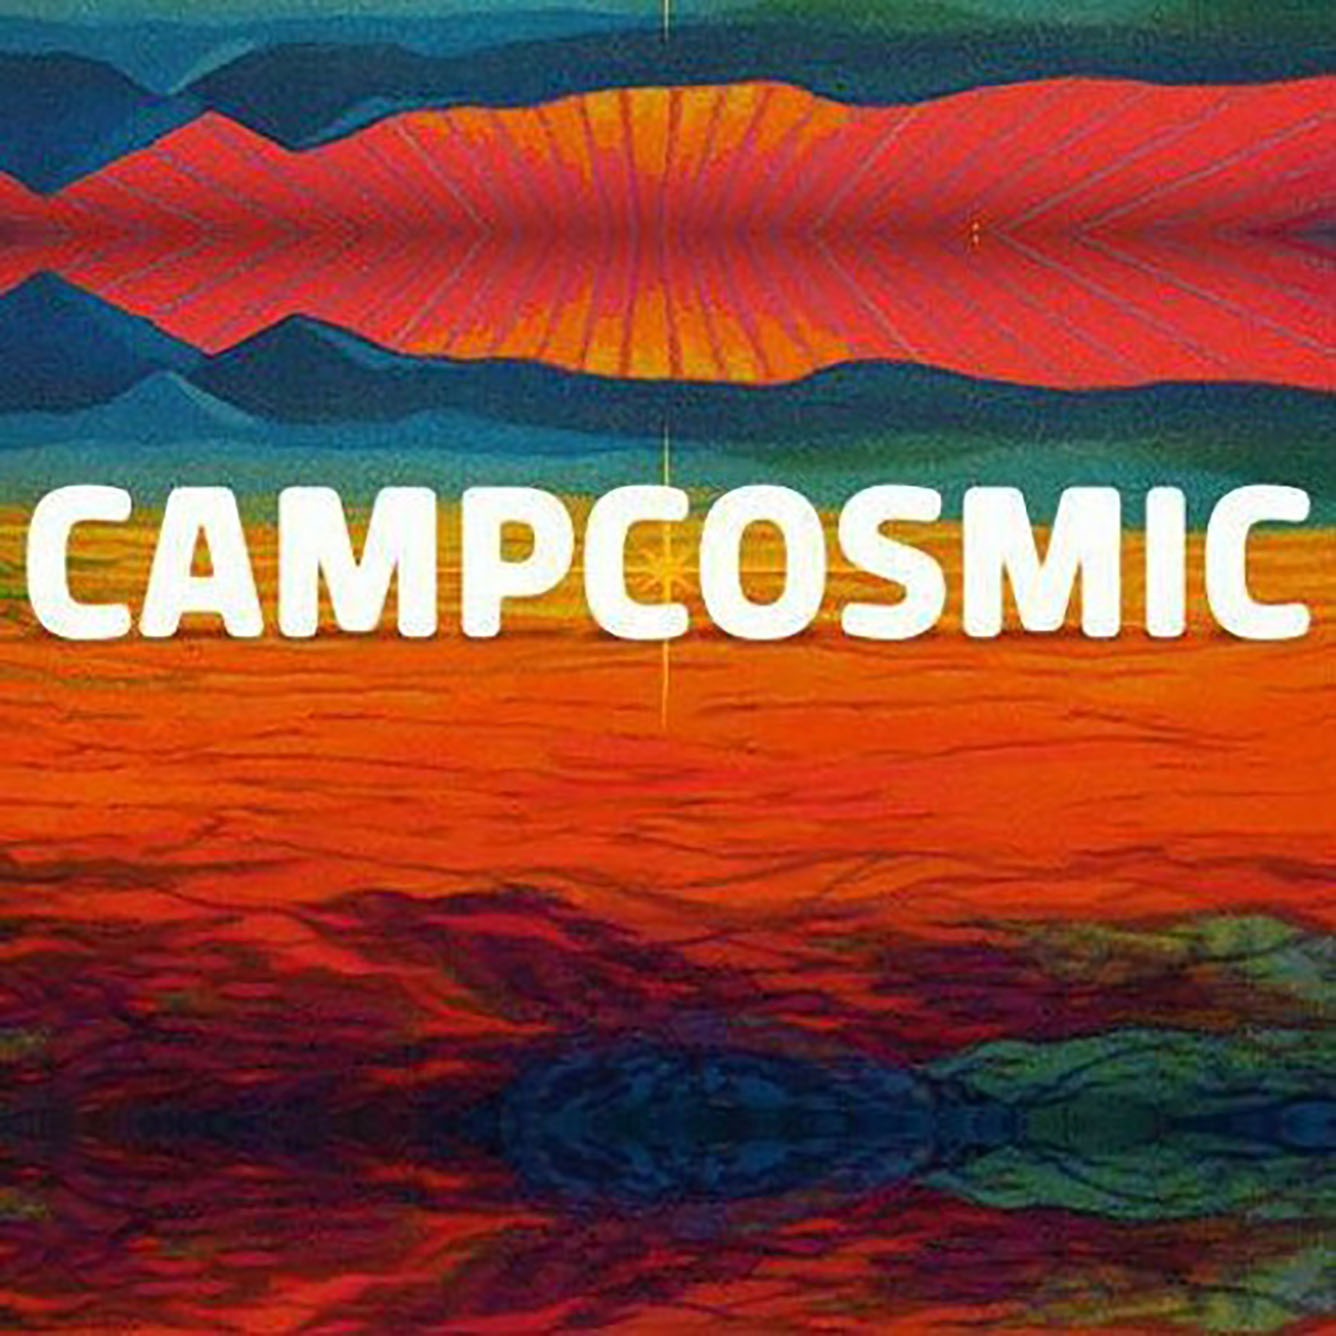 Behind the Amusement Park – Camp Cosmic 2015